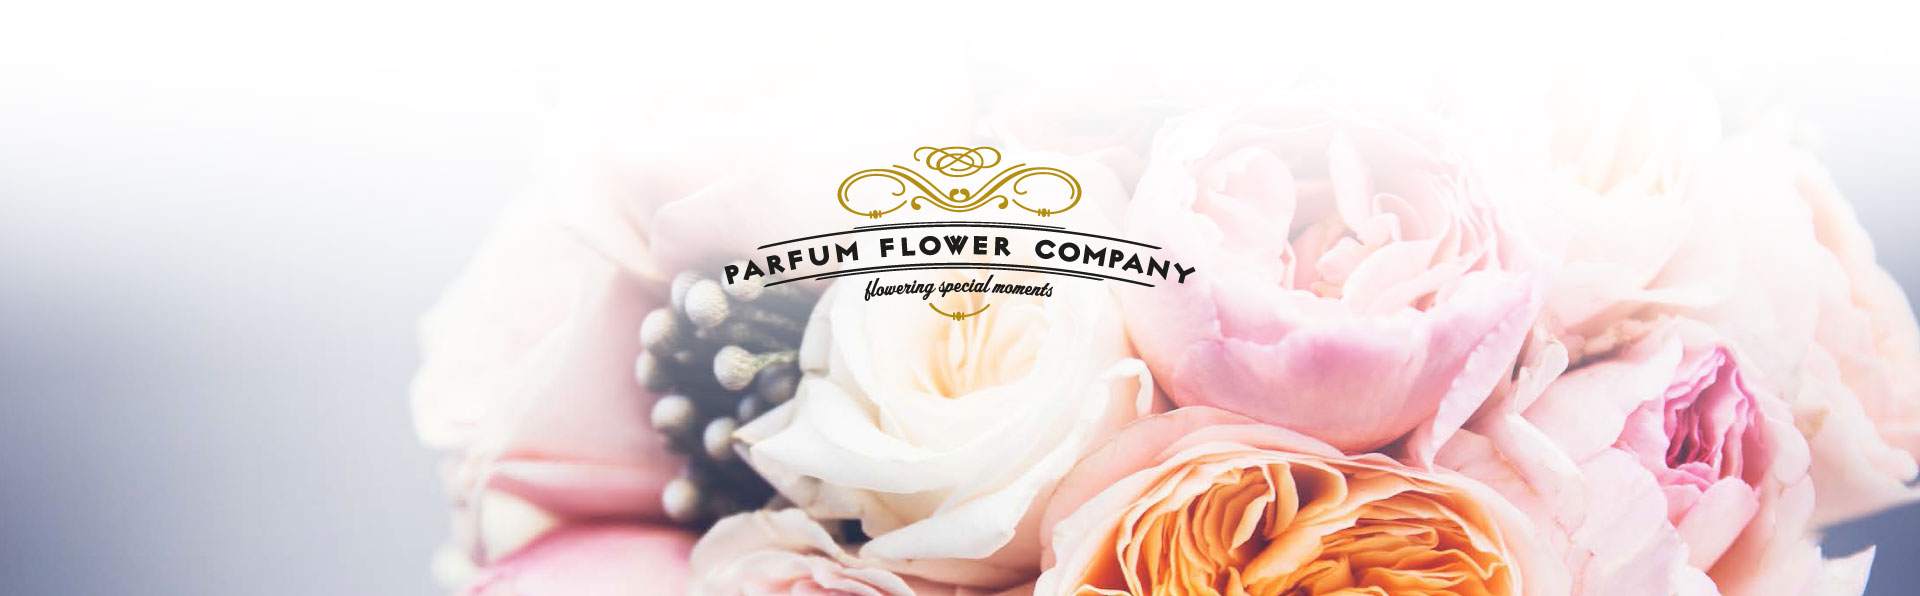 Slider Parfum Flower Company | www.parfumflowercompany.com | David Austin Wedding Roses, Meilland Jardin & Parfum Roses and other Luxury (scented) roses